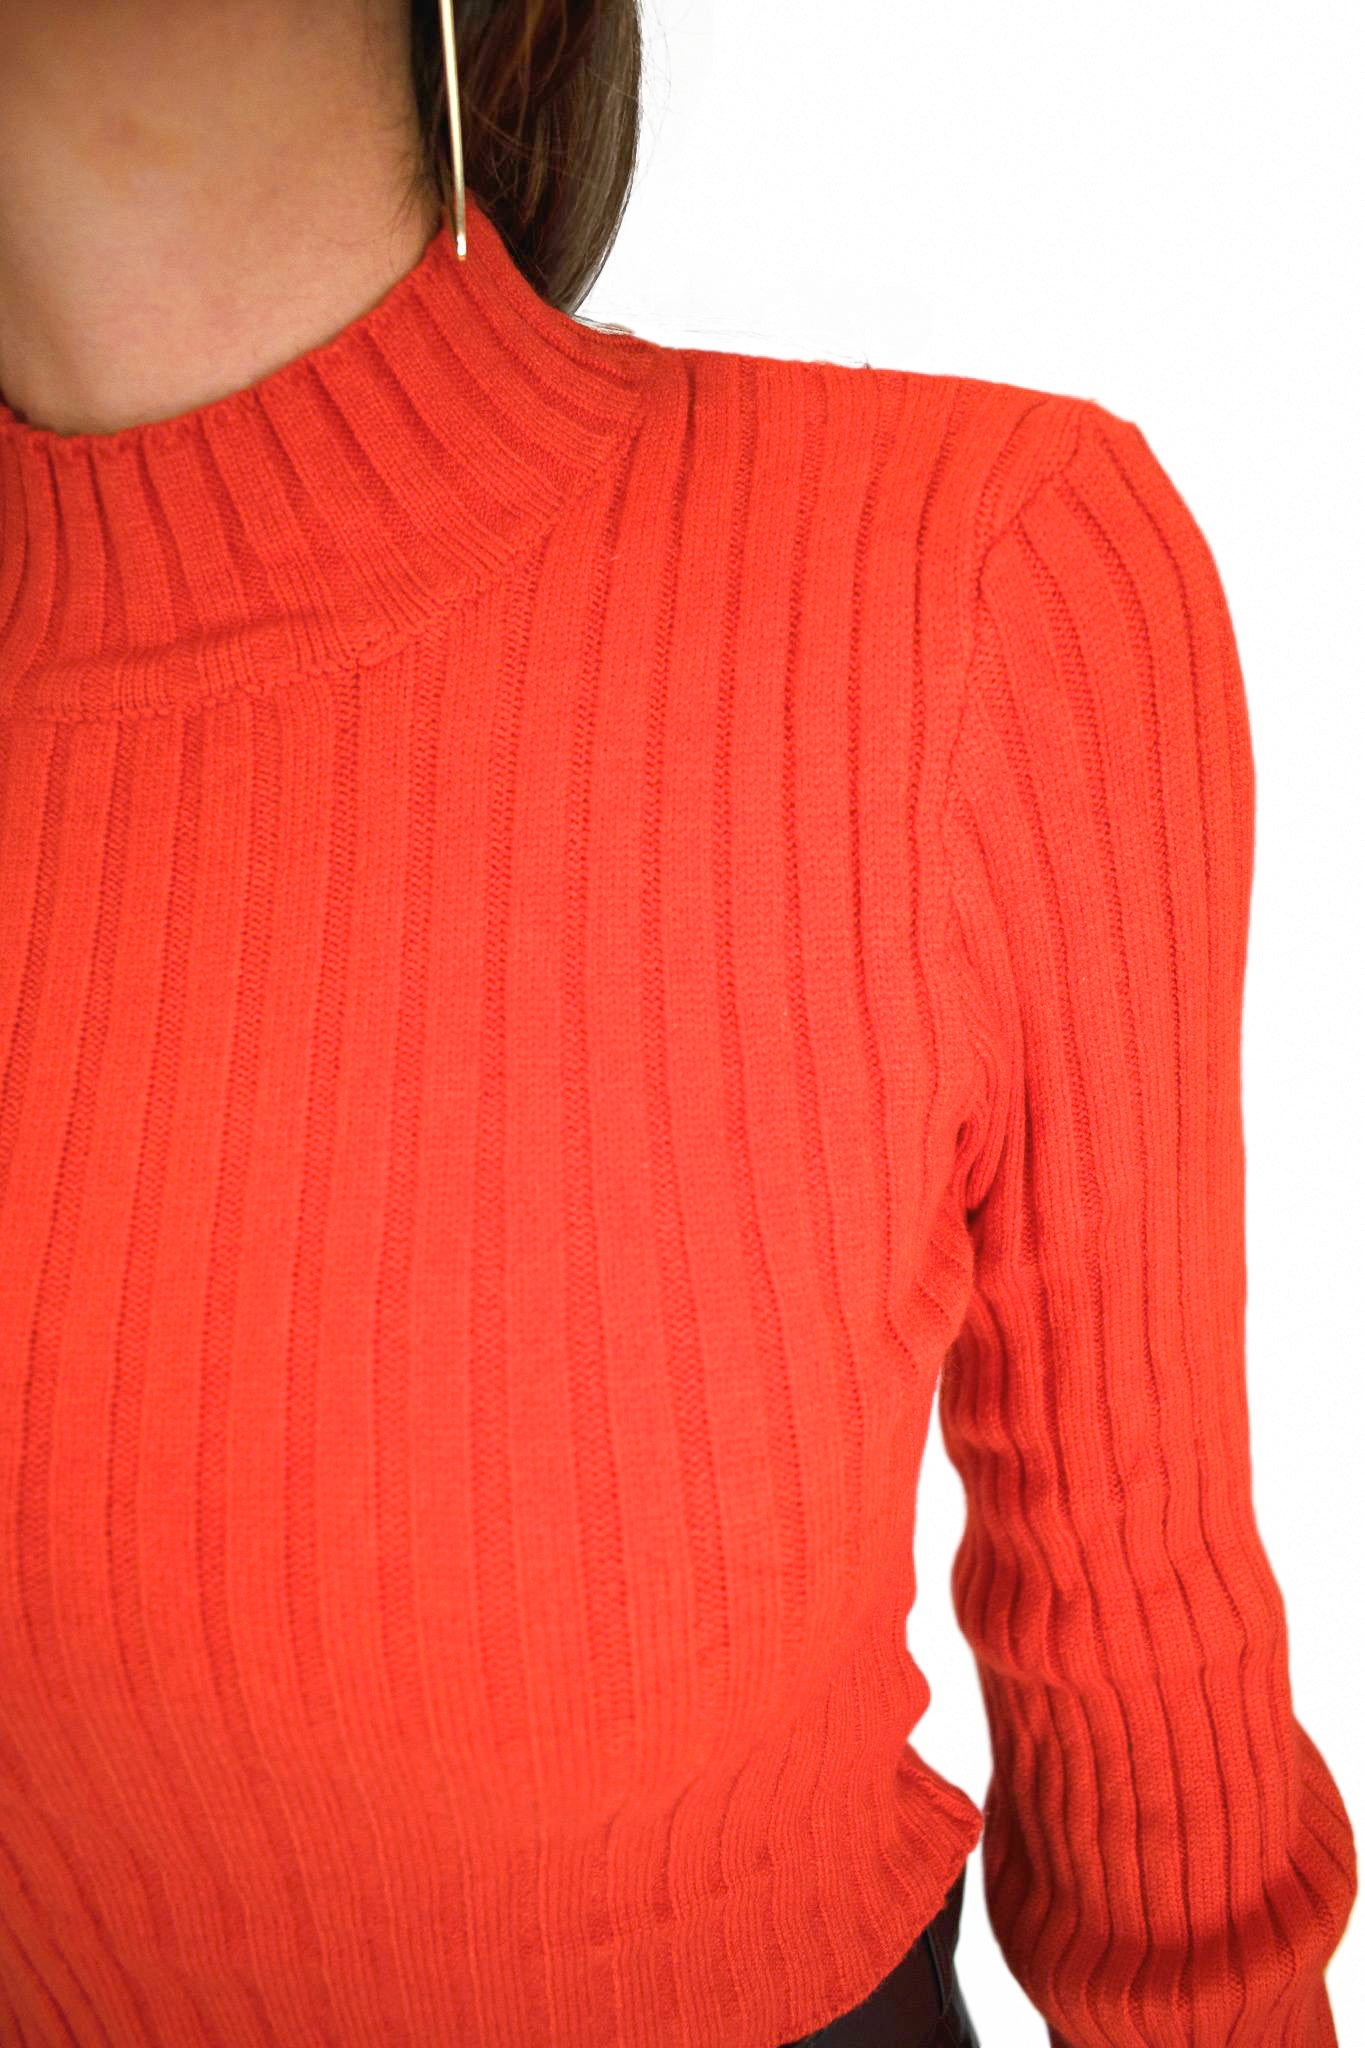 BACK UP SWEATER IN TOMATO